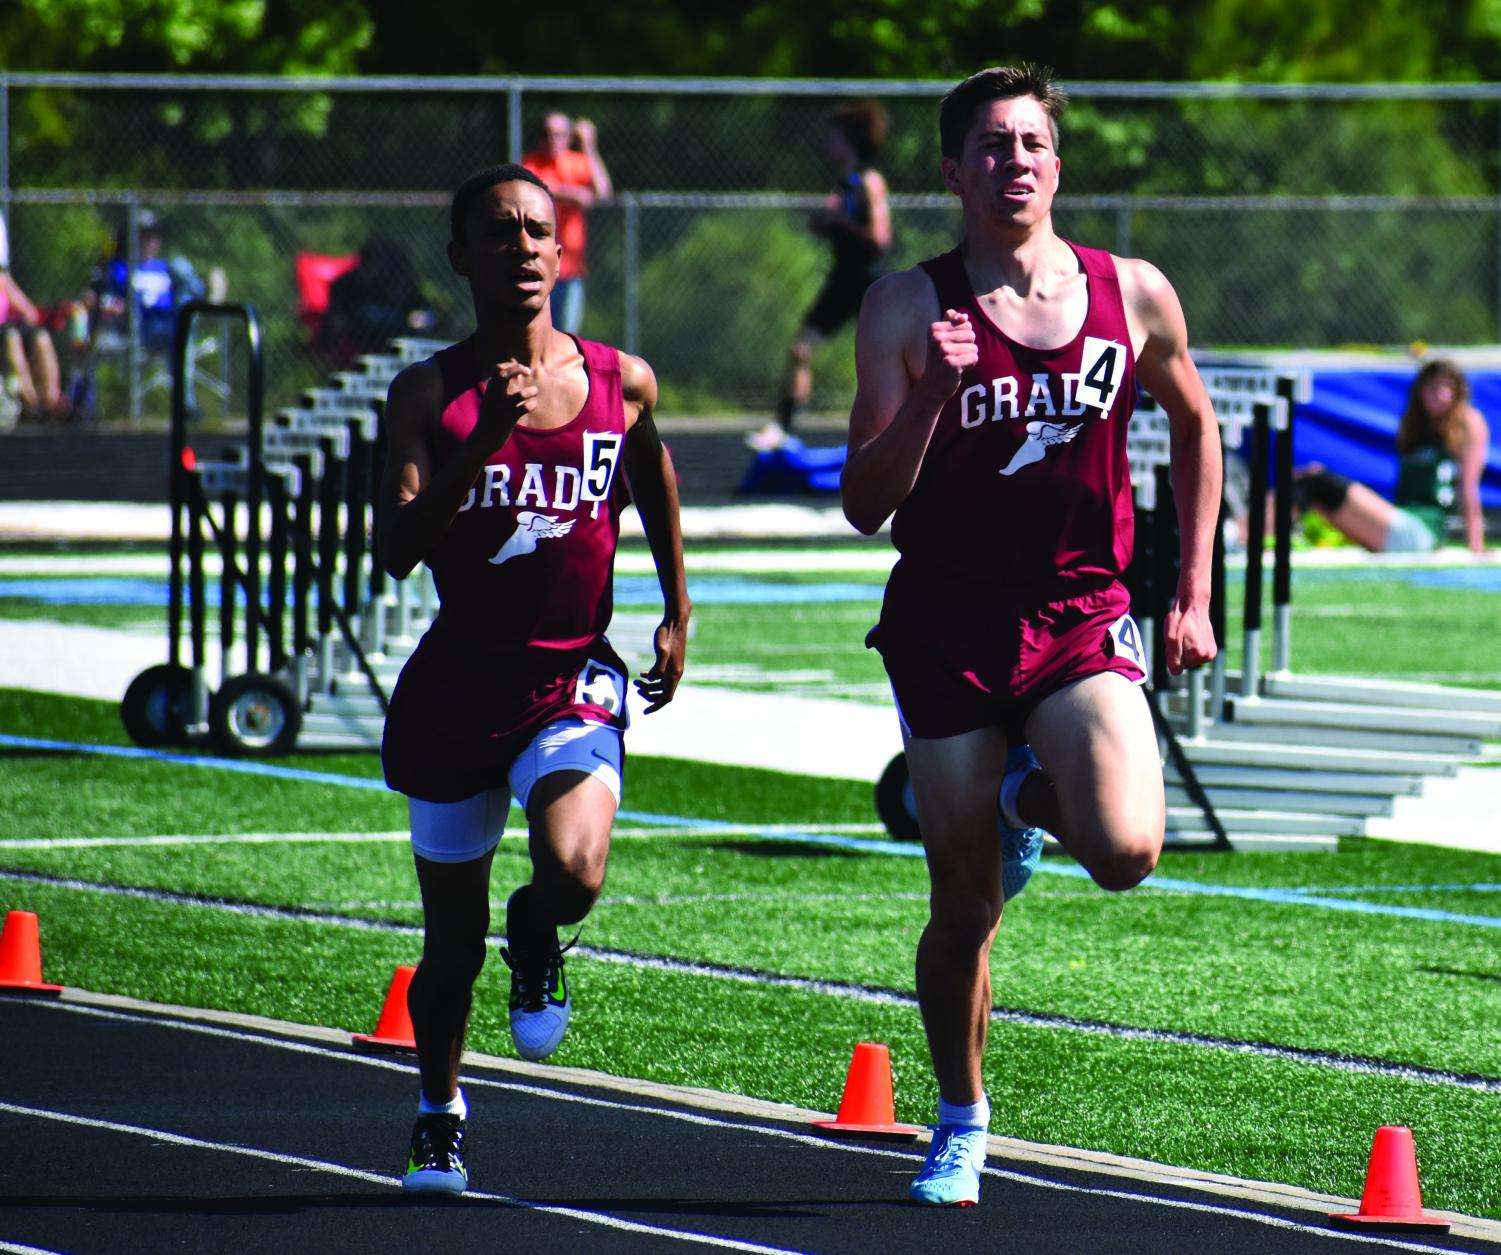 Seniors Isaiha Davis and Aidan Goldston finishing 9th and 6th respectivly in the 1600m race.